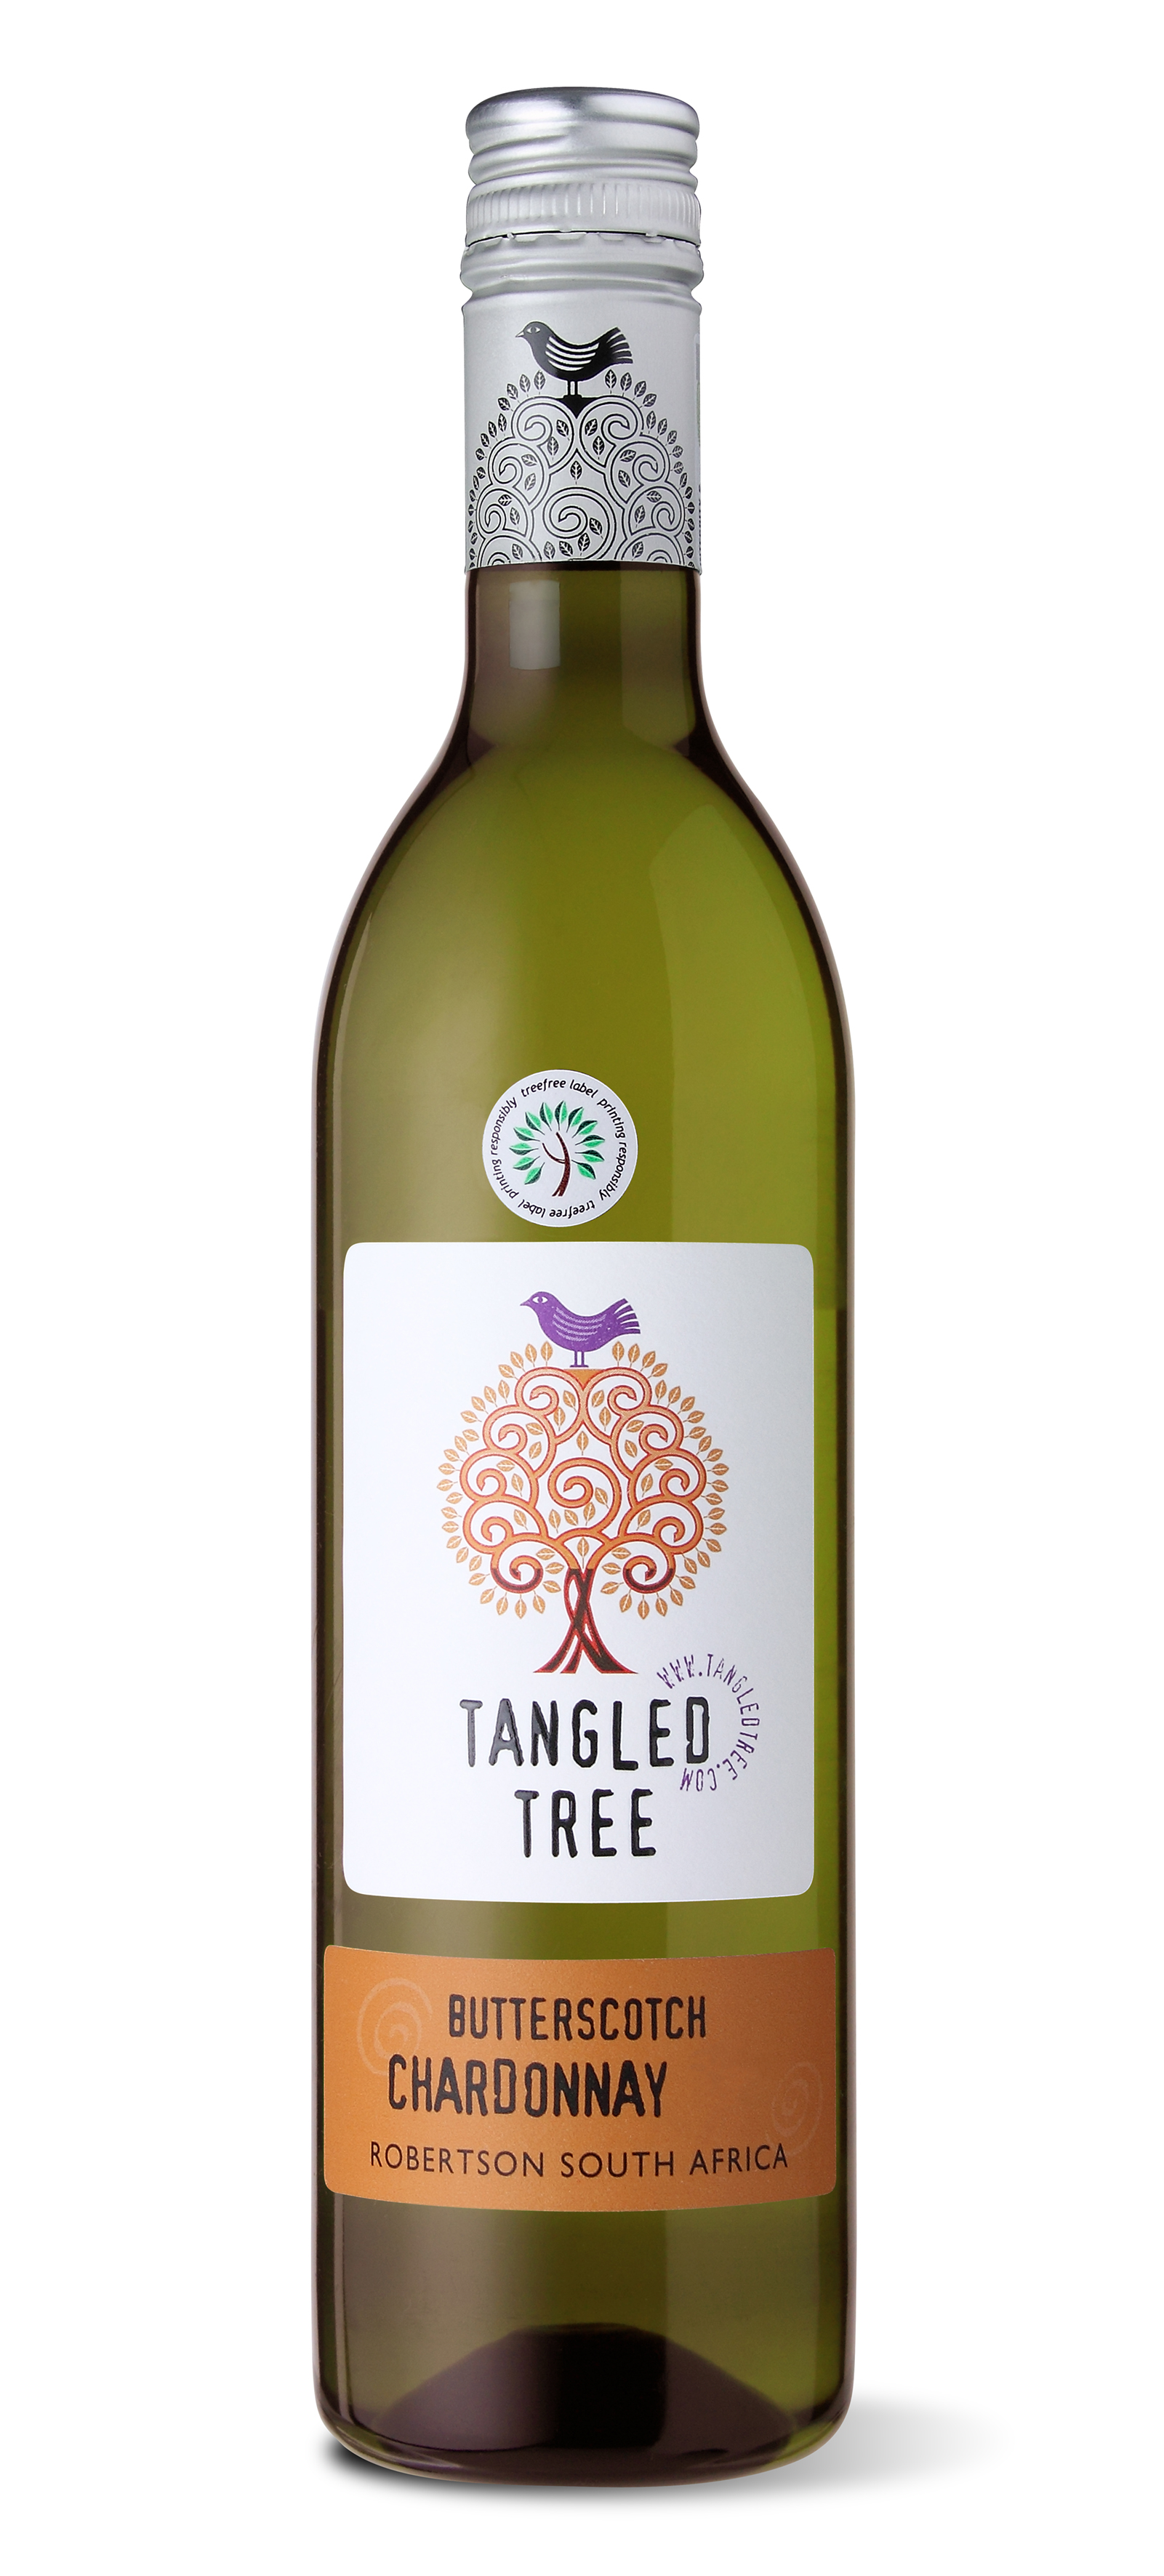 Tangled Tree Butterscotch Chardonnay 2012